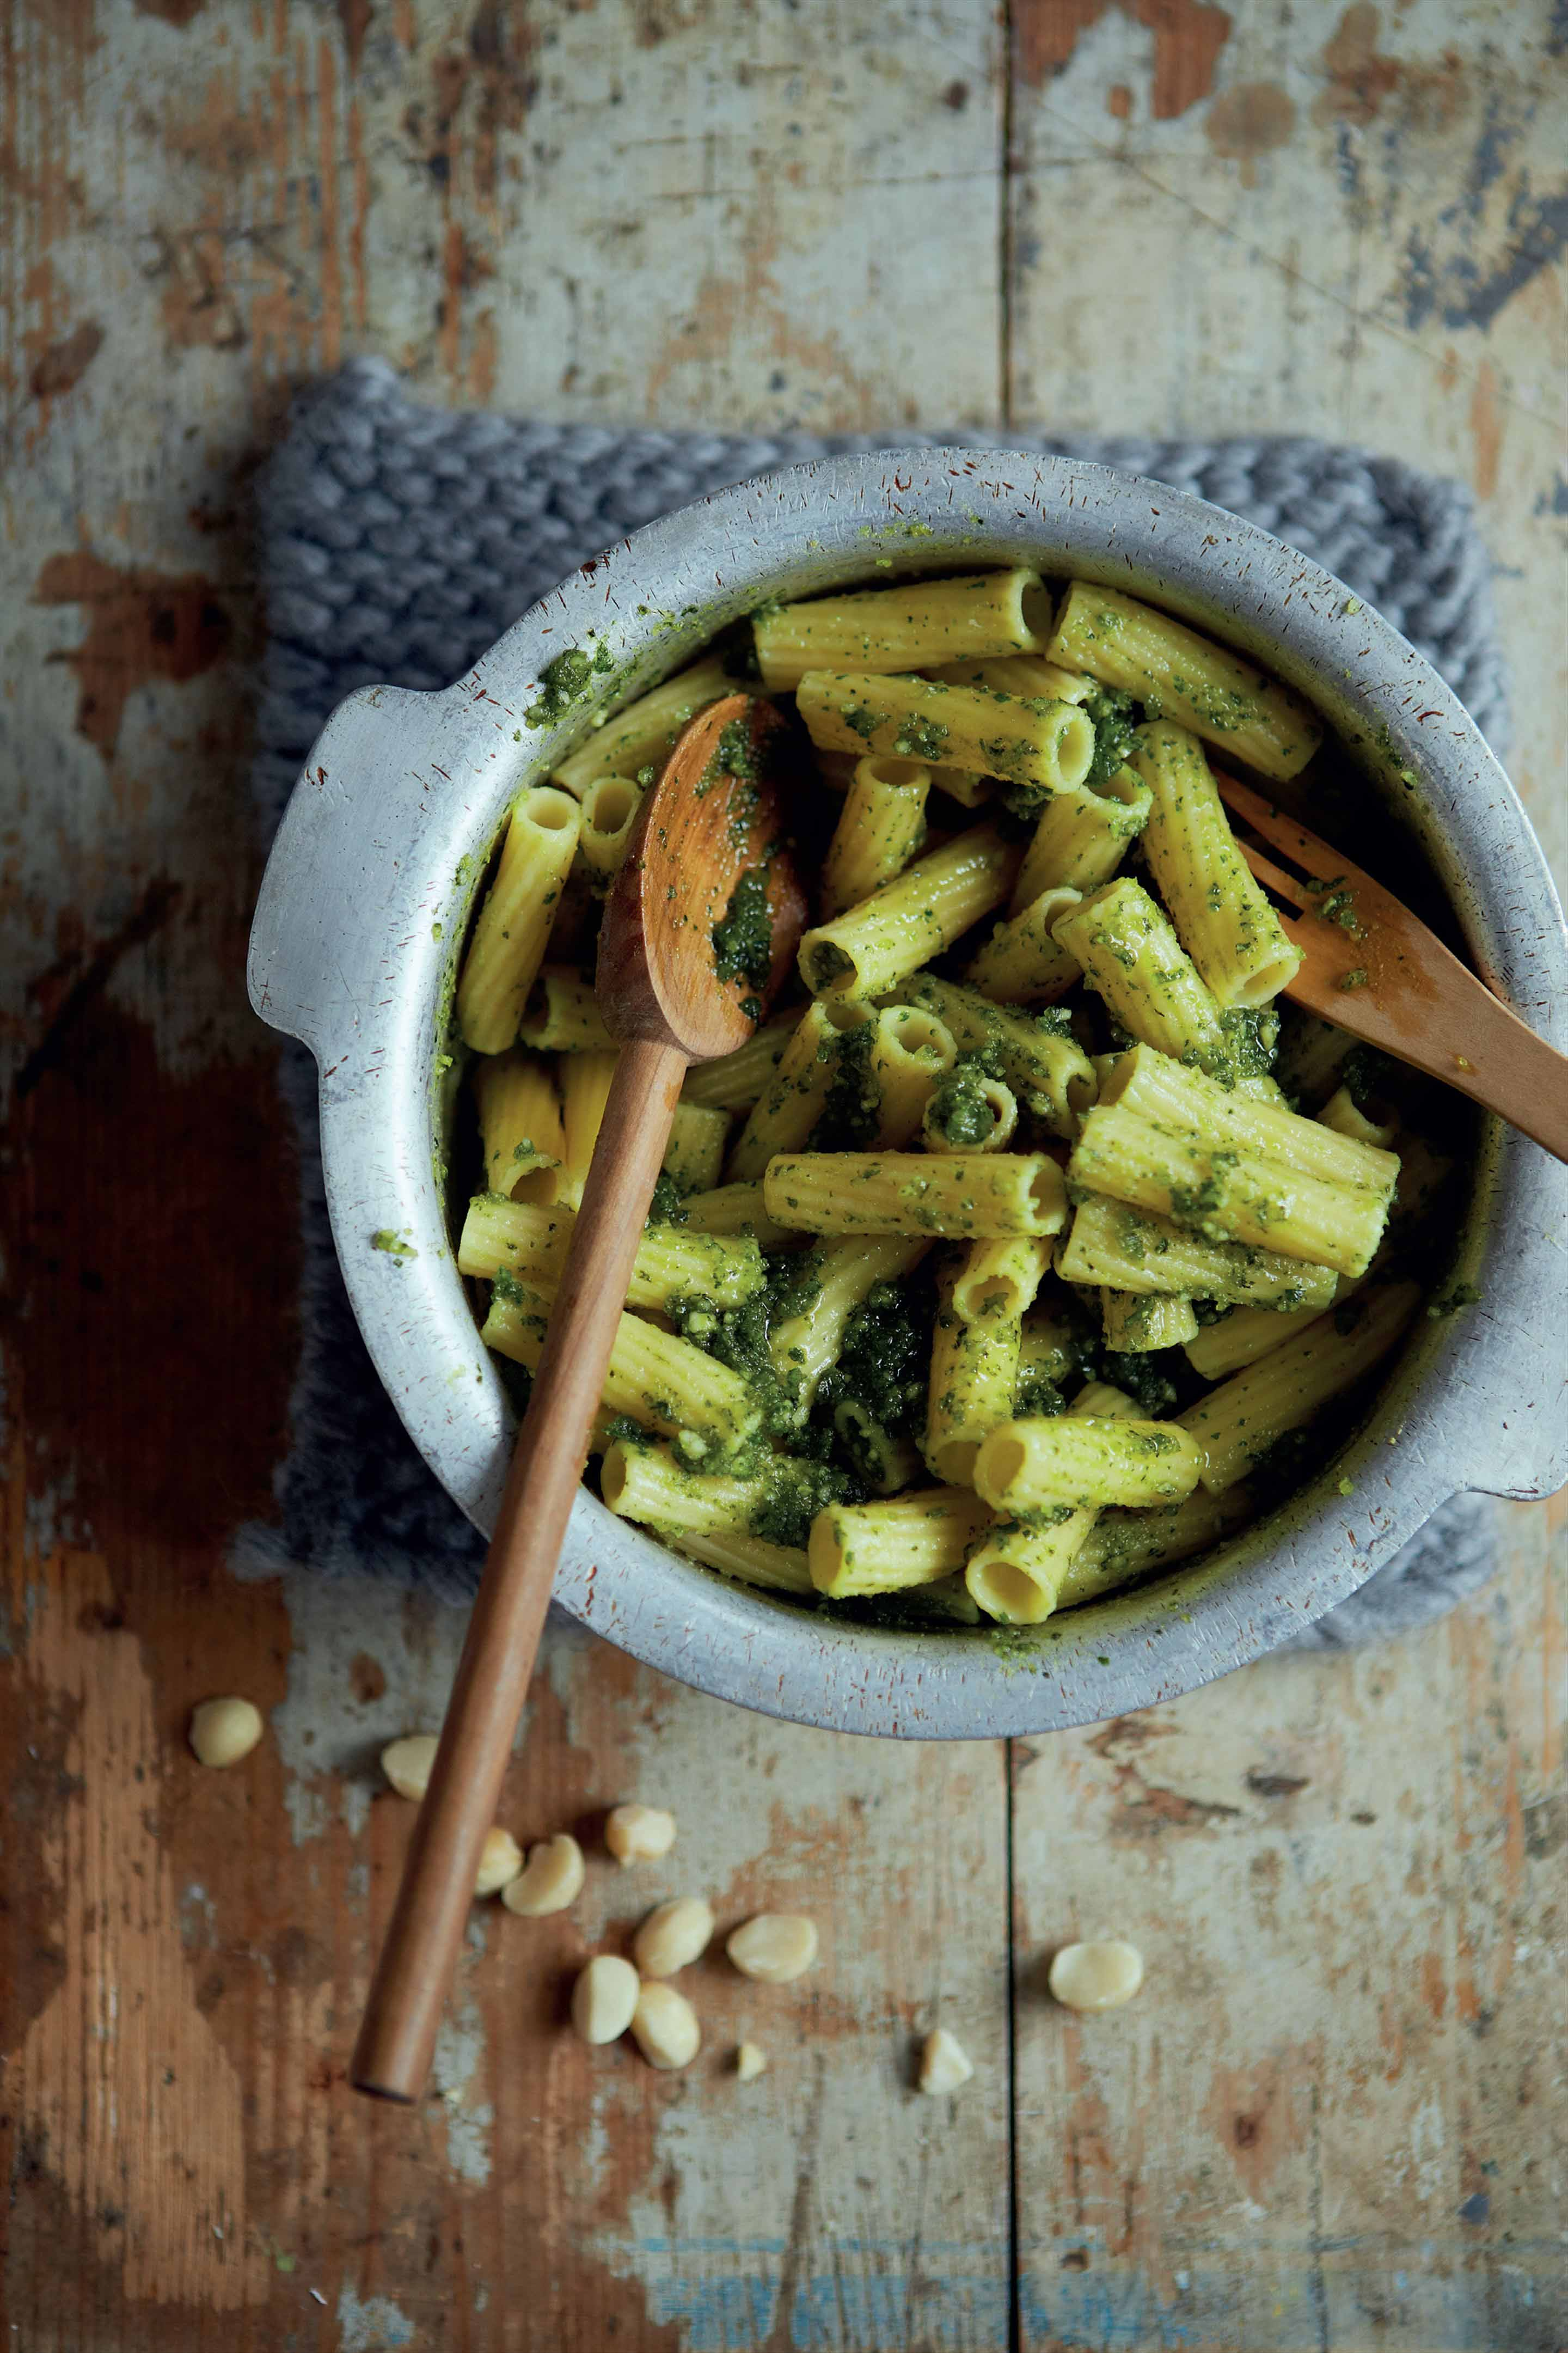 Macadamia pesto on wholegrain pasta